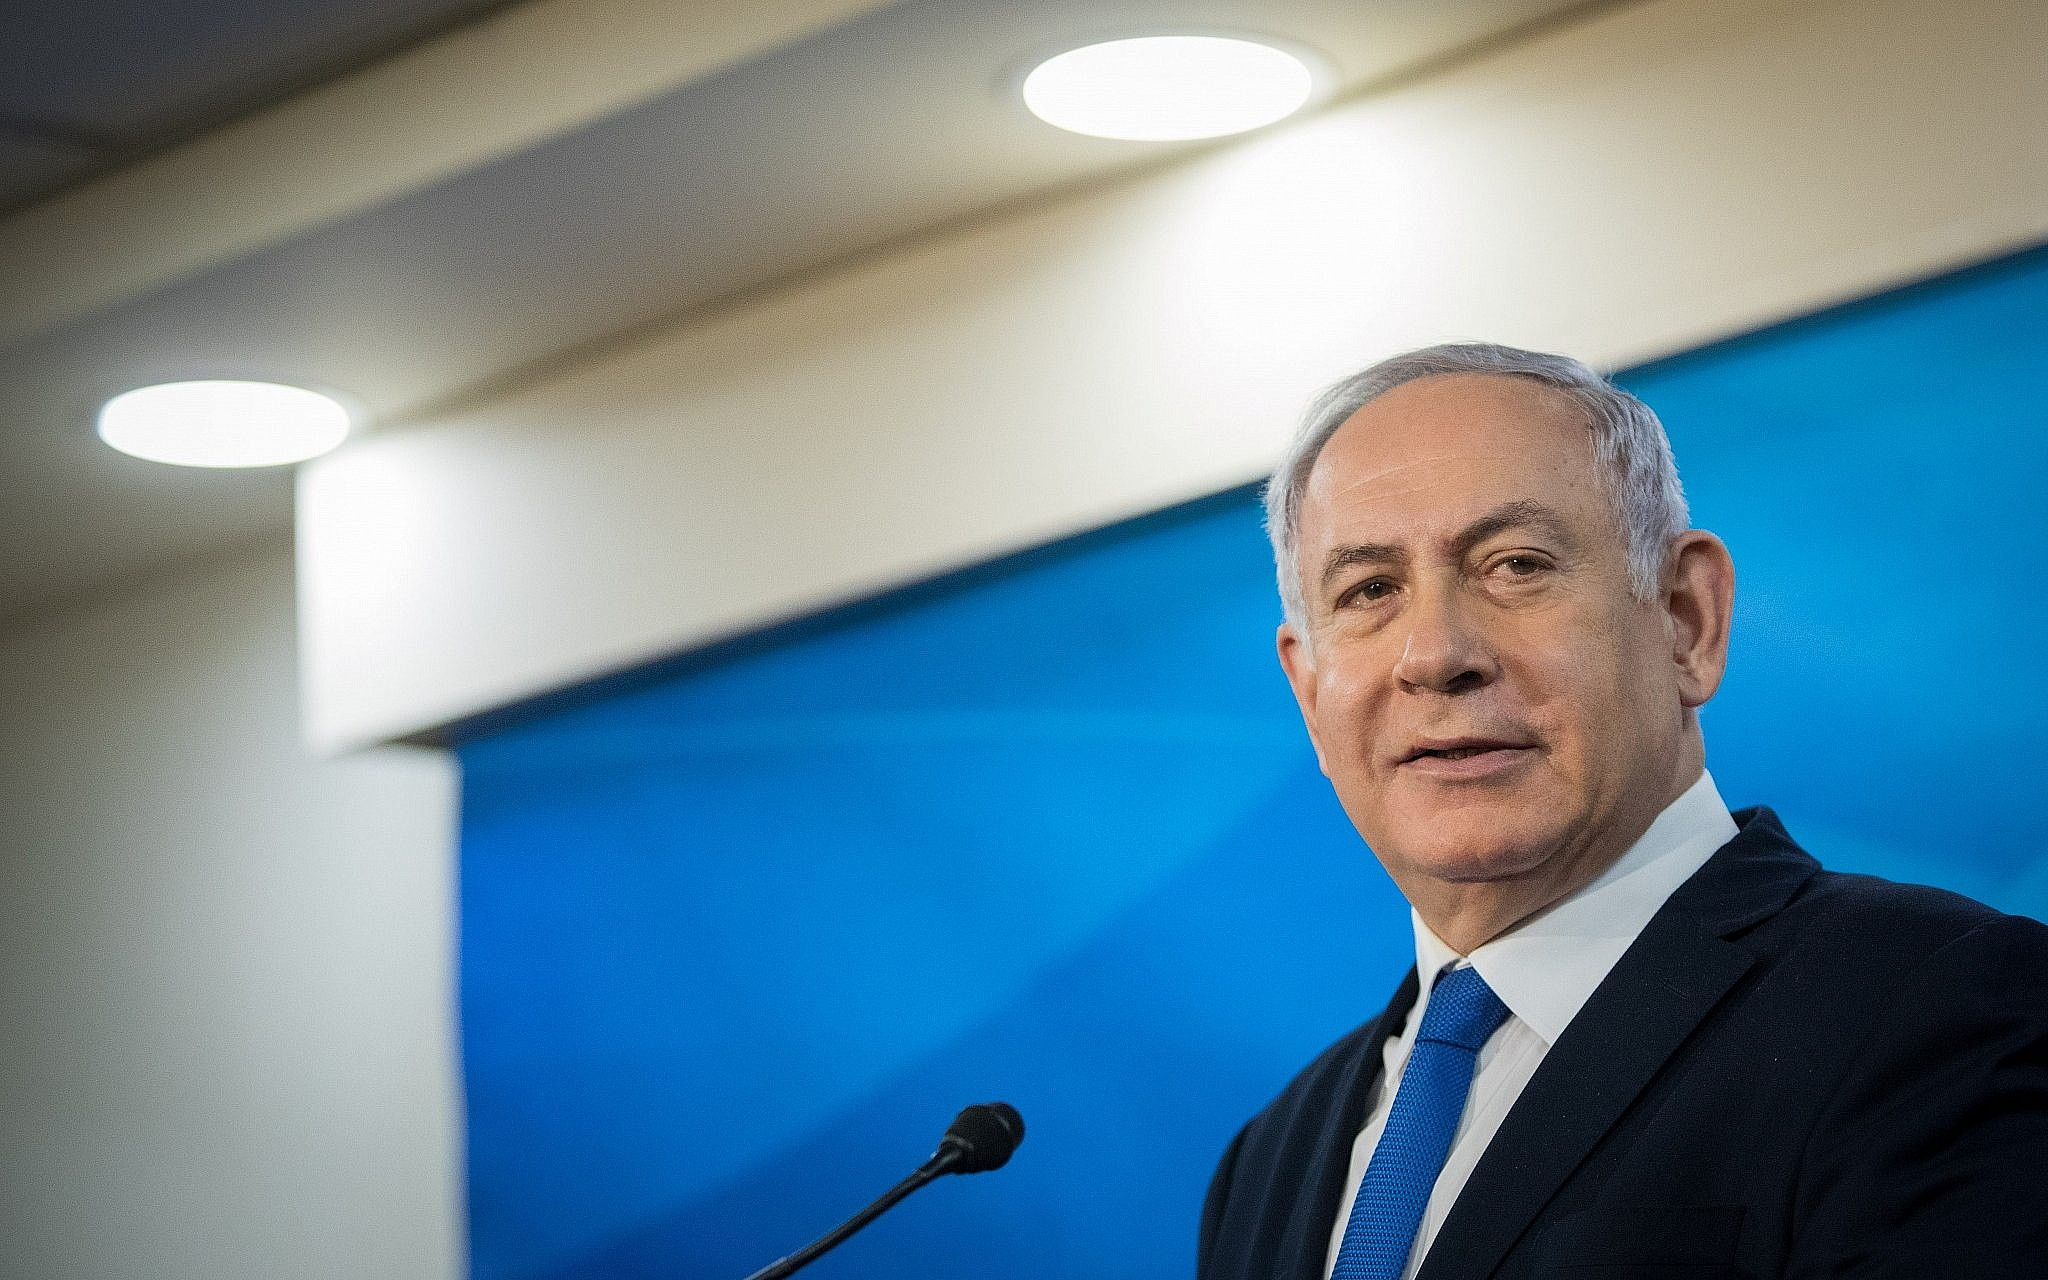 Netanyahu's Party Loses Lead in Election Campaign for 1st Time - Polls